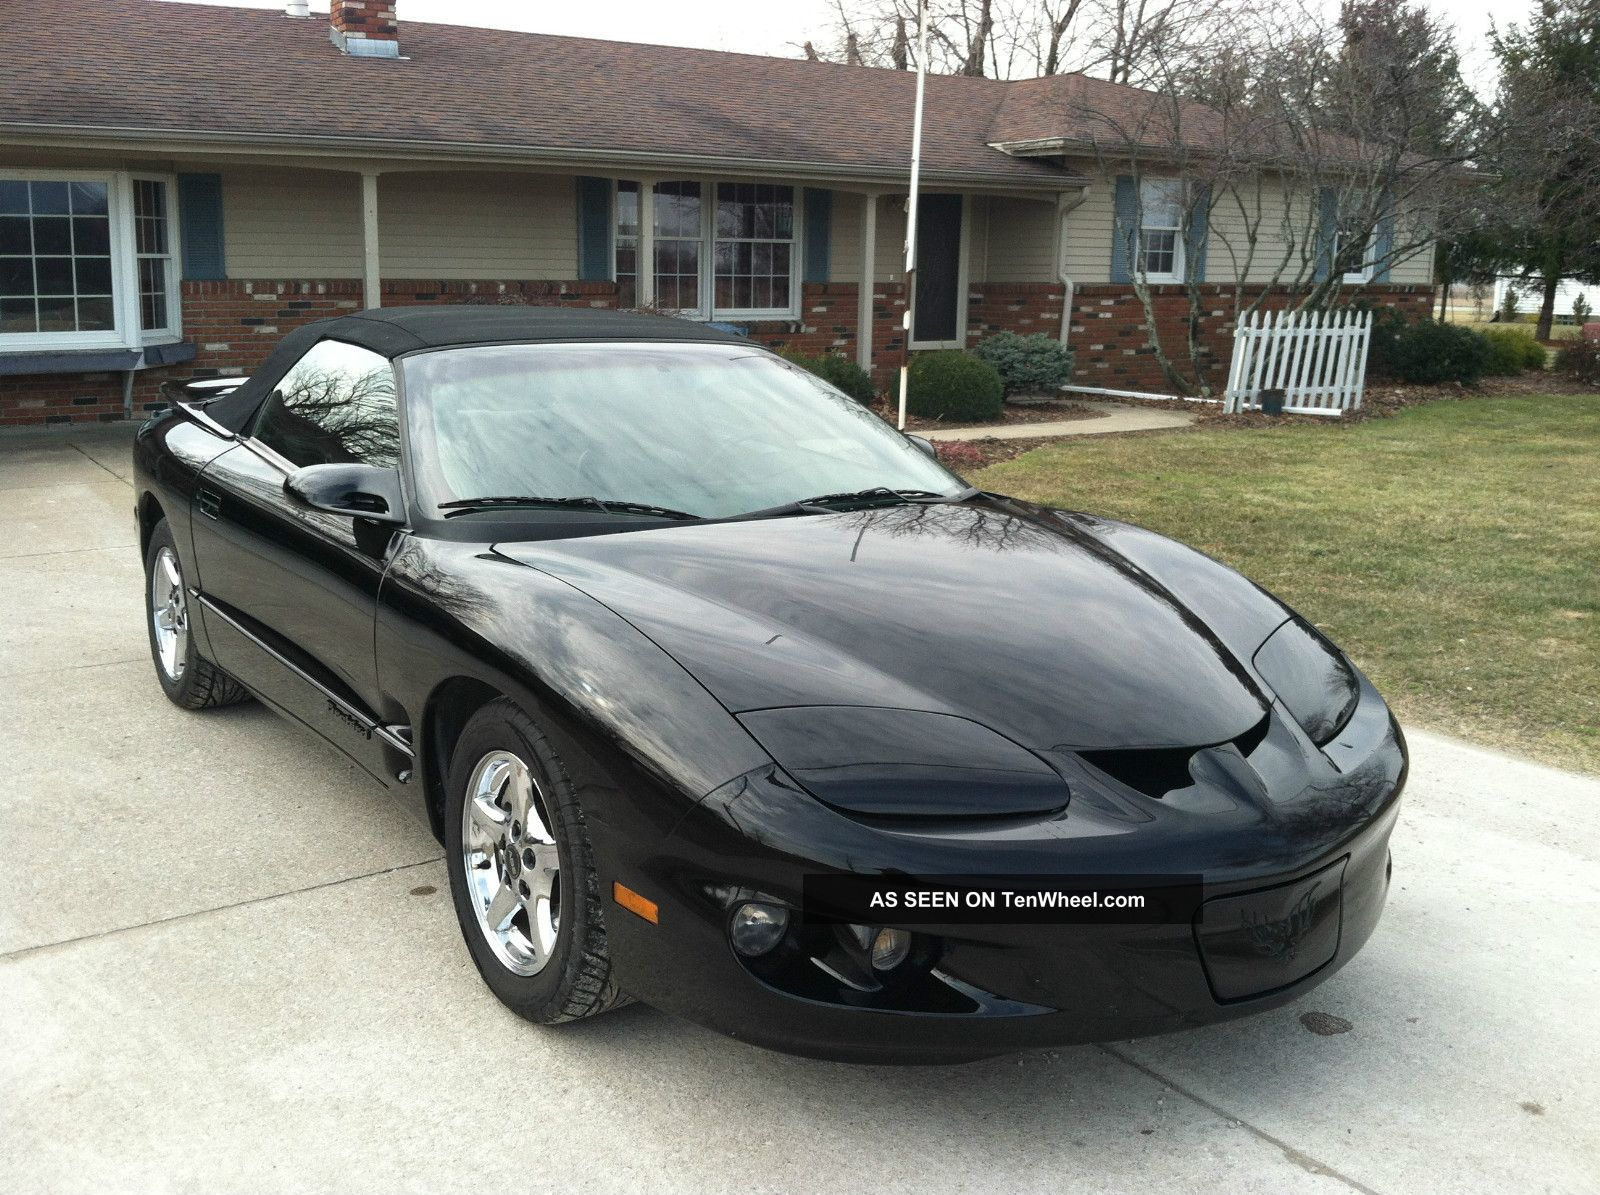 2002 pontiac firebird base convertible 2 door 3 8l. Black Bedroom Furniture Sets. Home Design Ideas